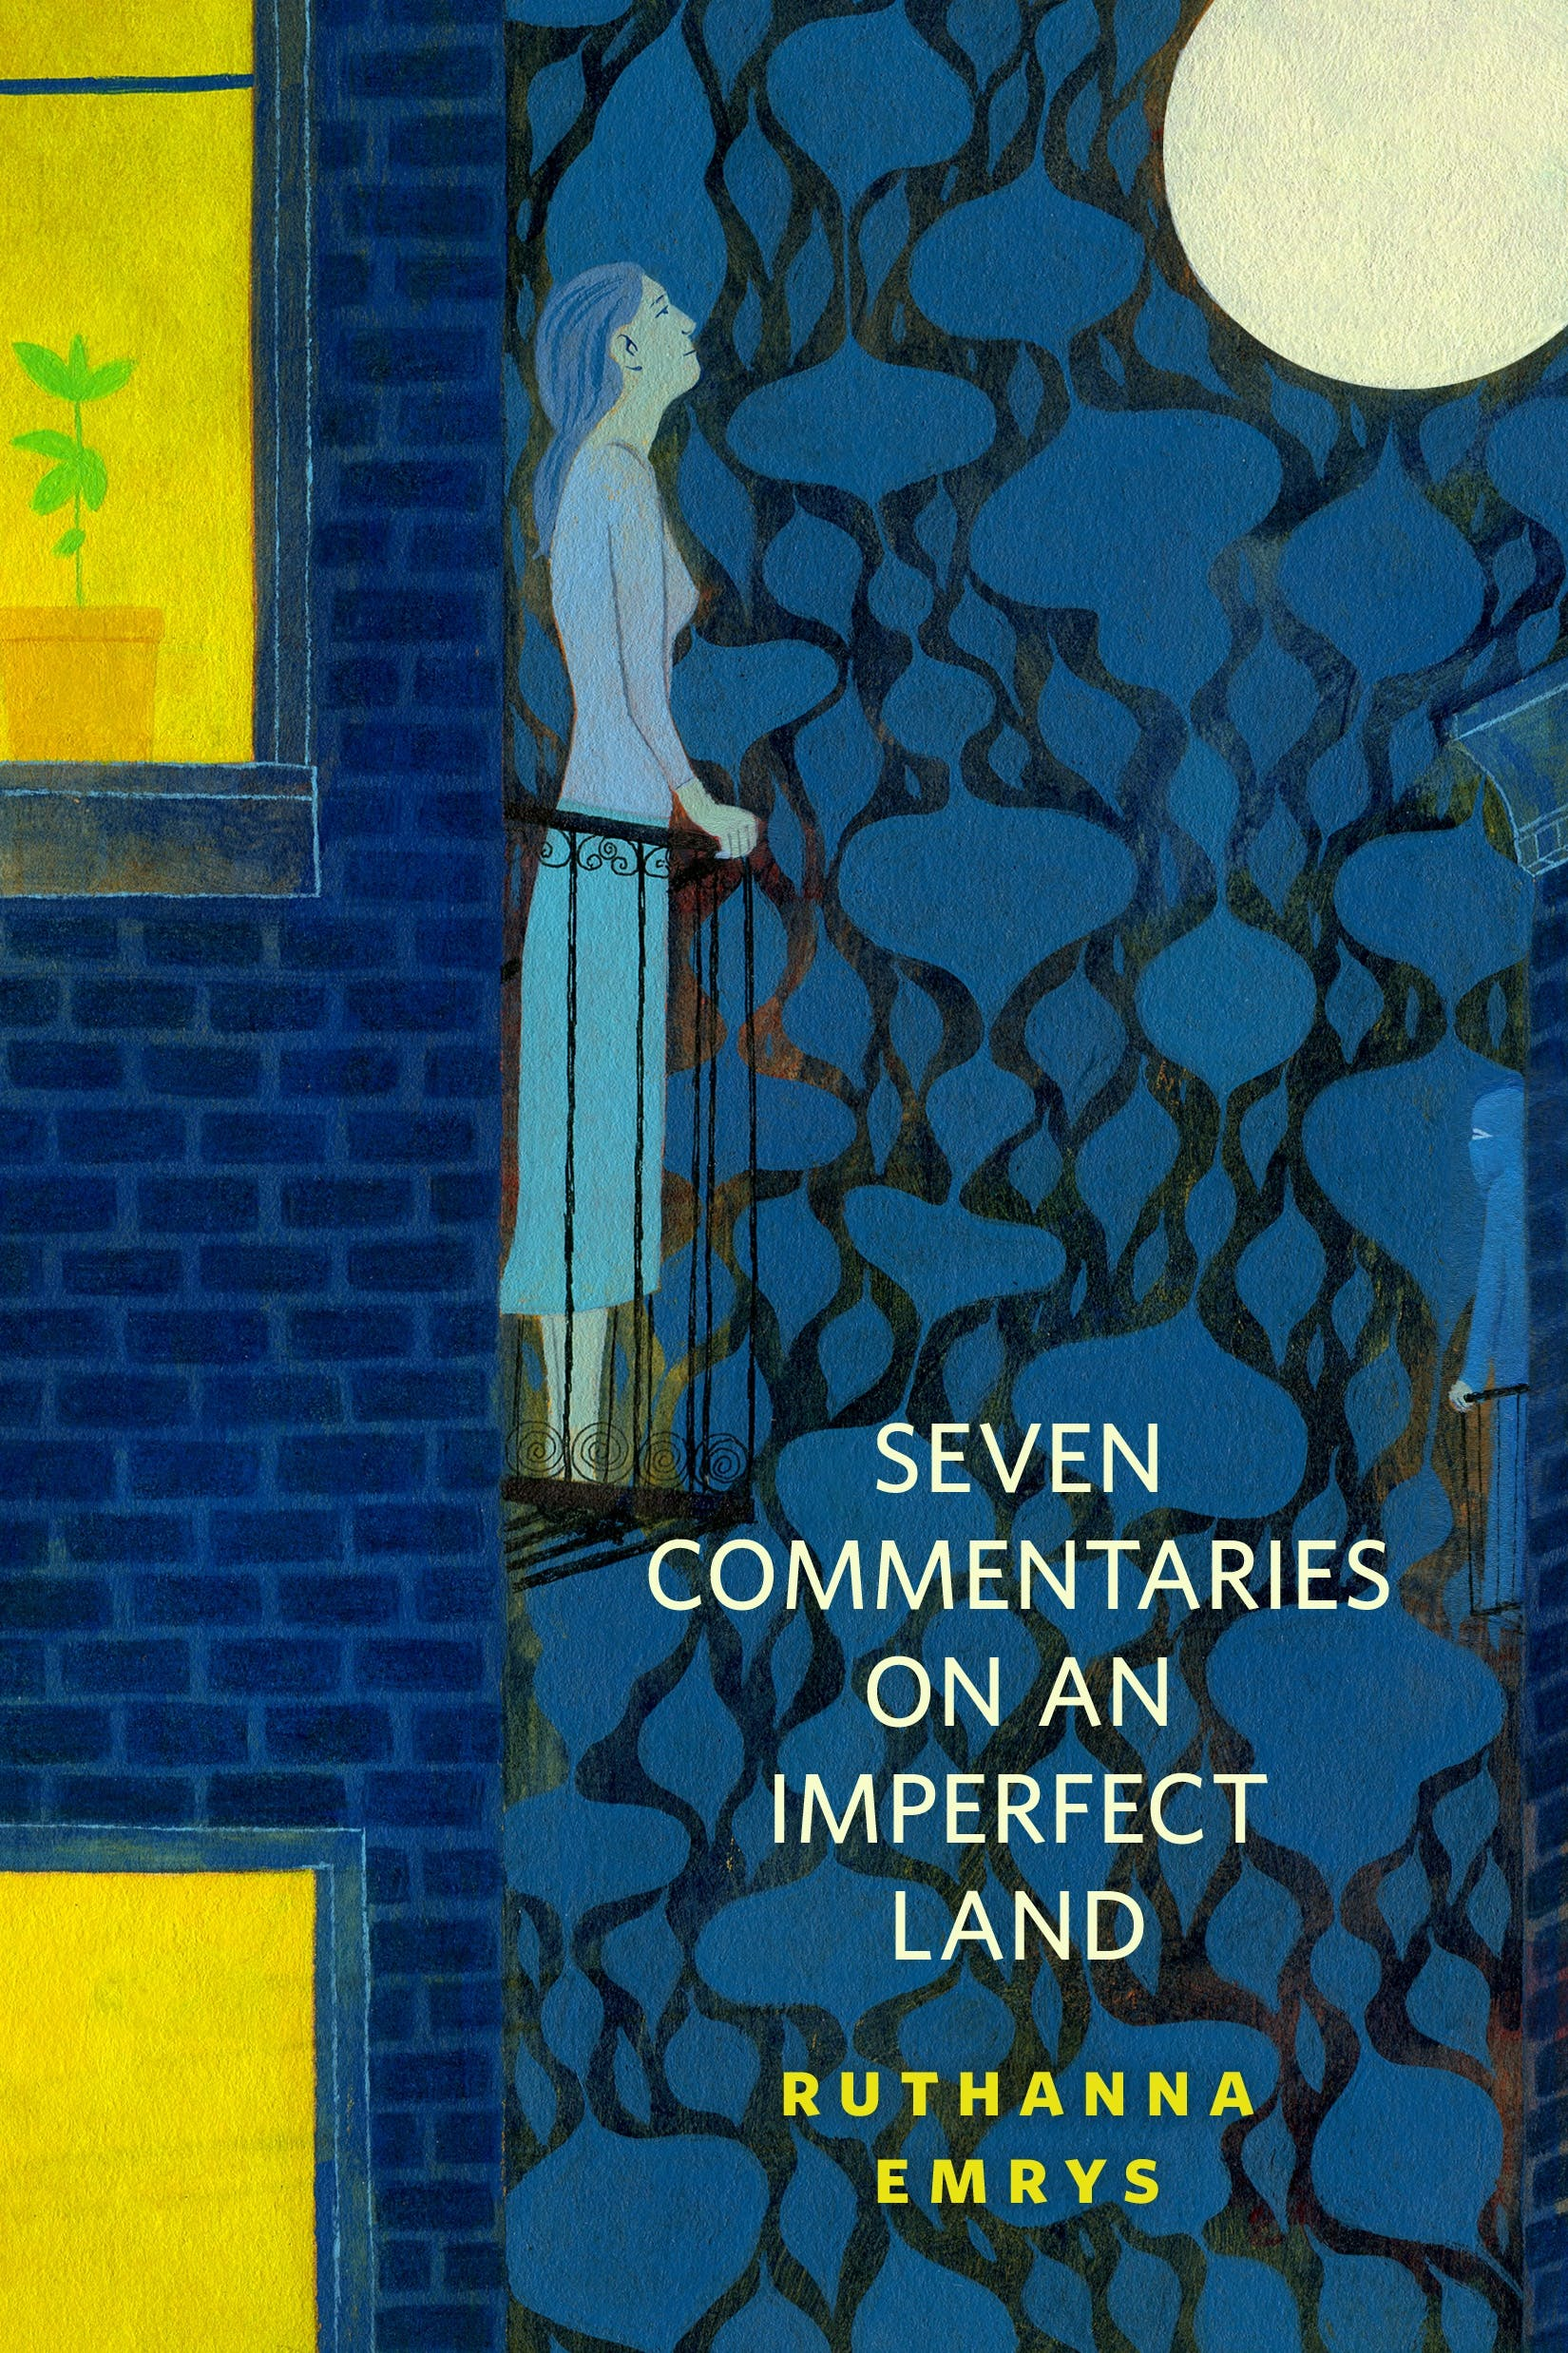 Image of Seven Commentaries on an Imperfect Land